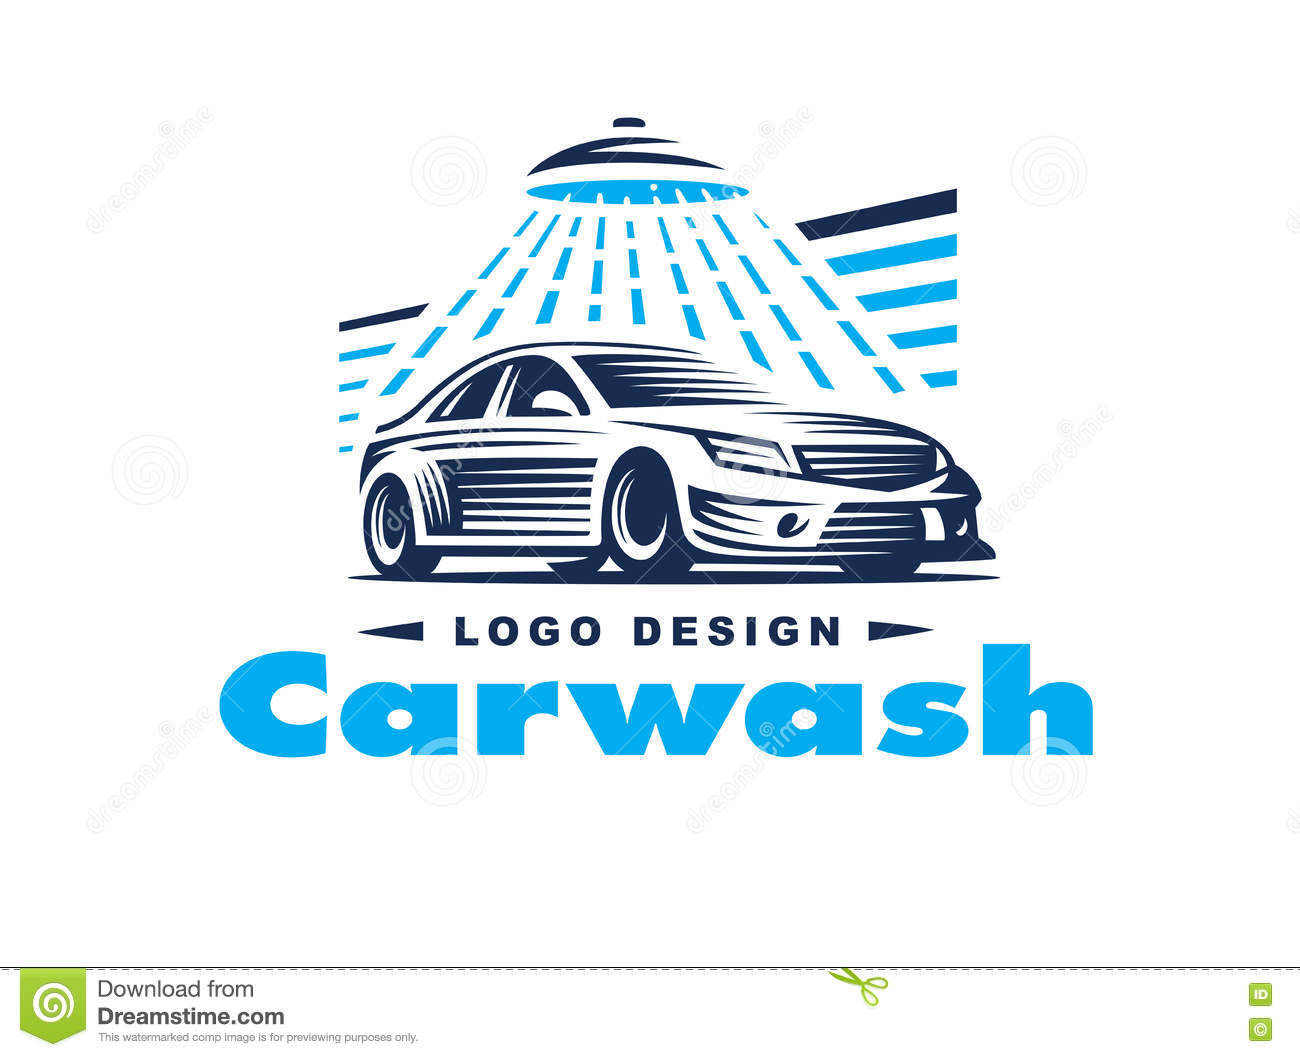 Car Wash Business 101: Equipment and Investment Requirements